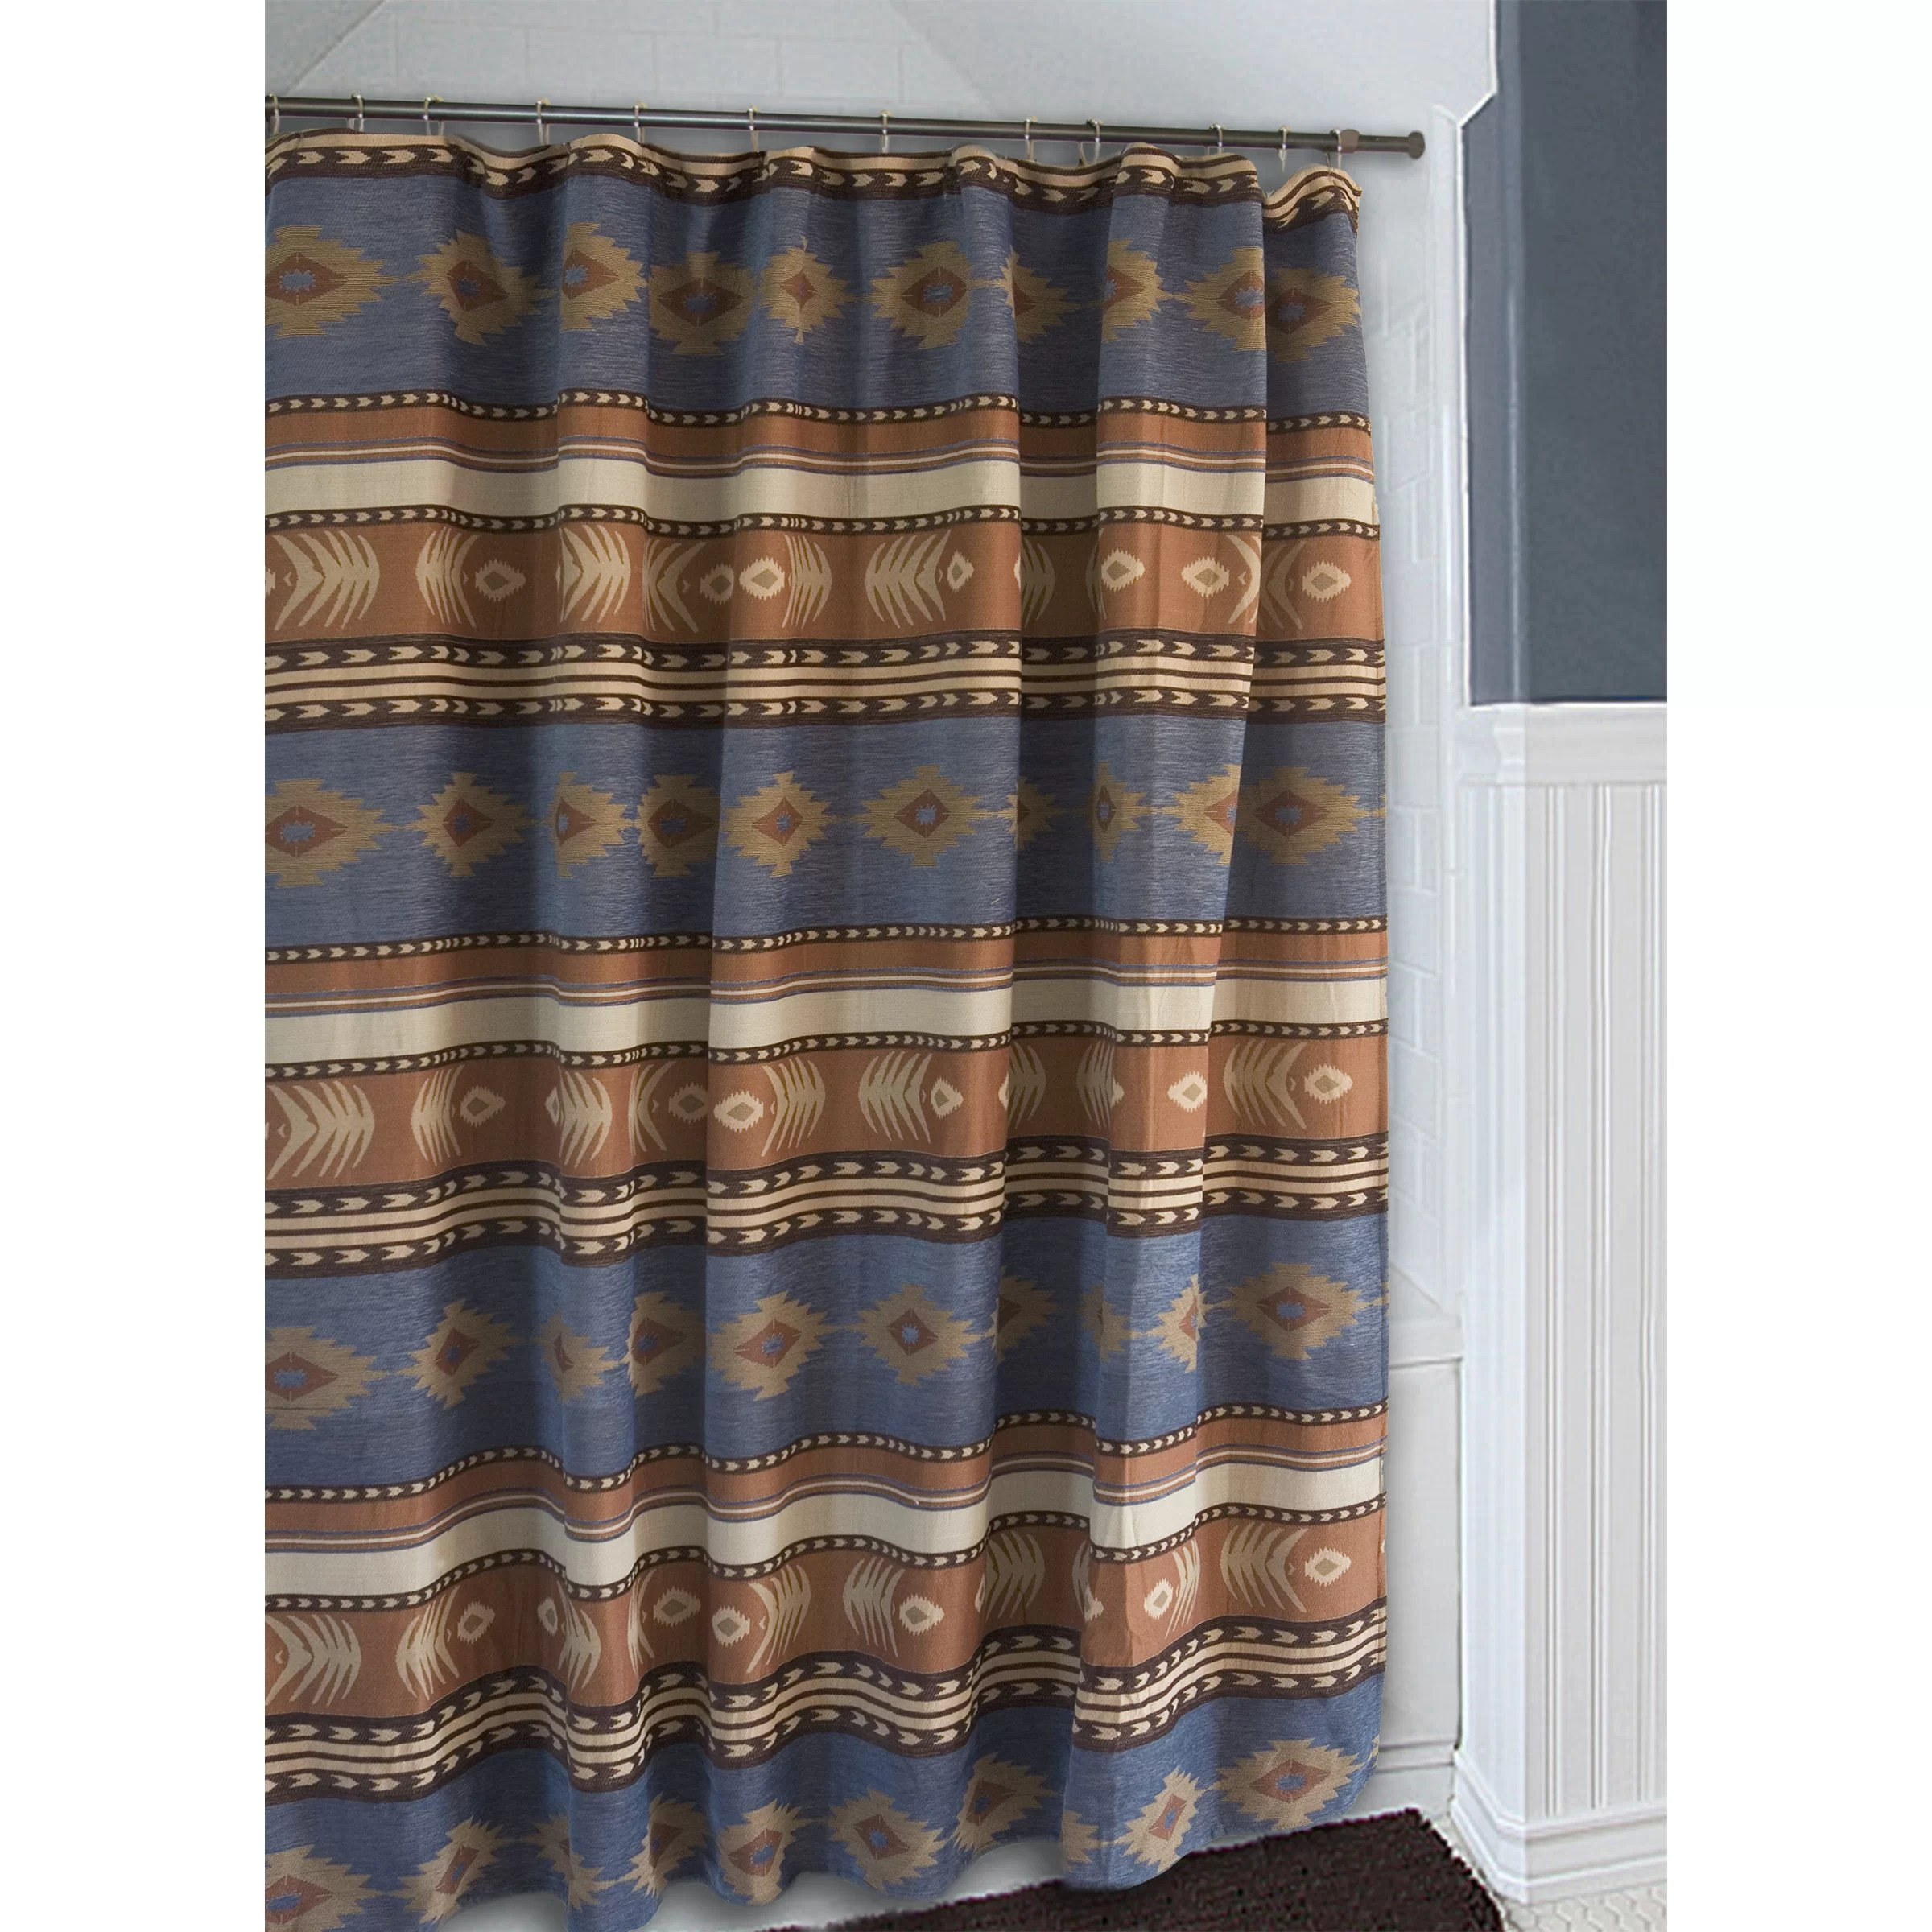 Carstens Inc Sierra Denim Blue and Brown Southwest